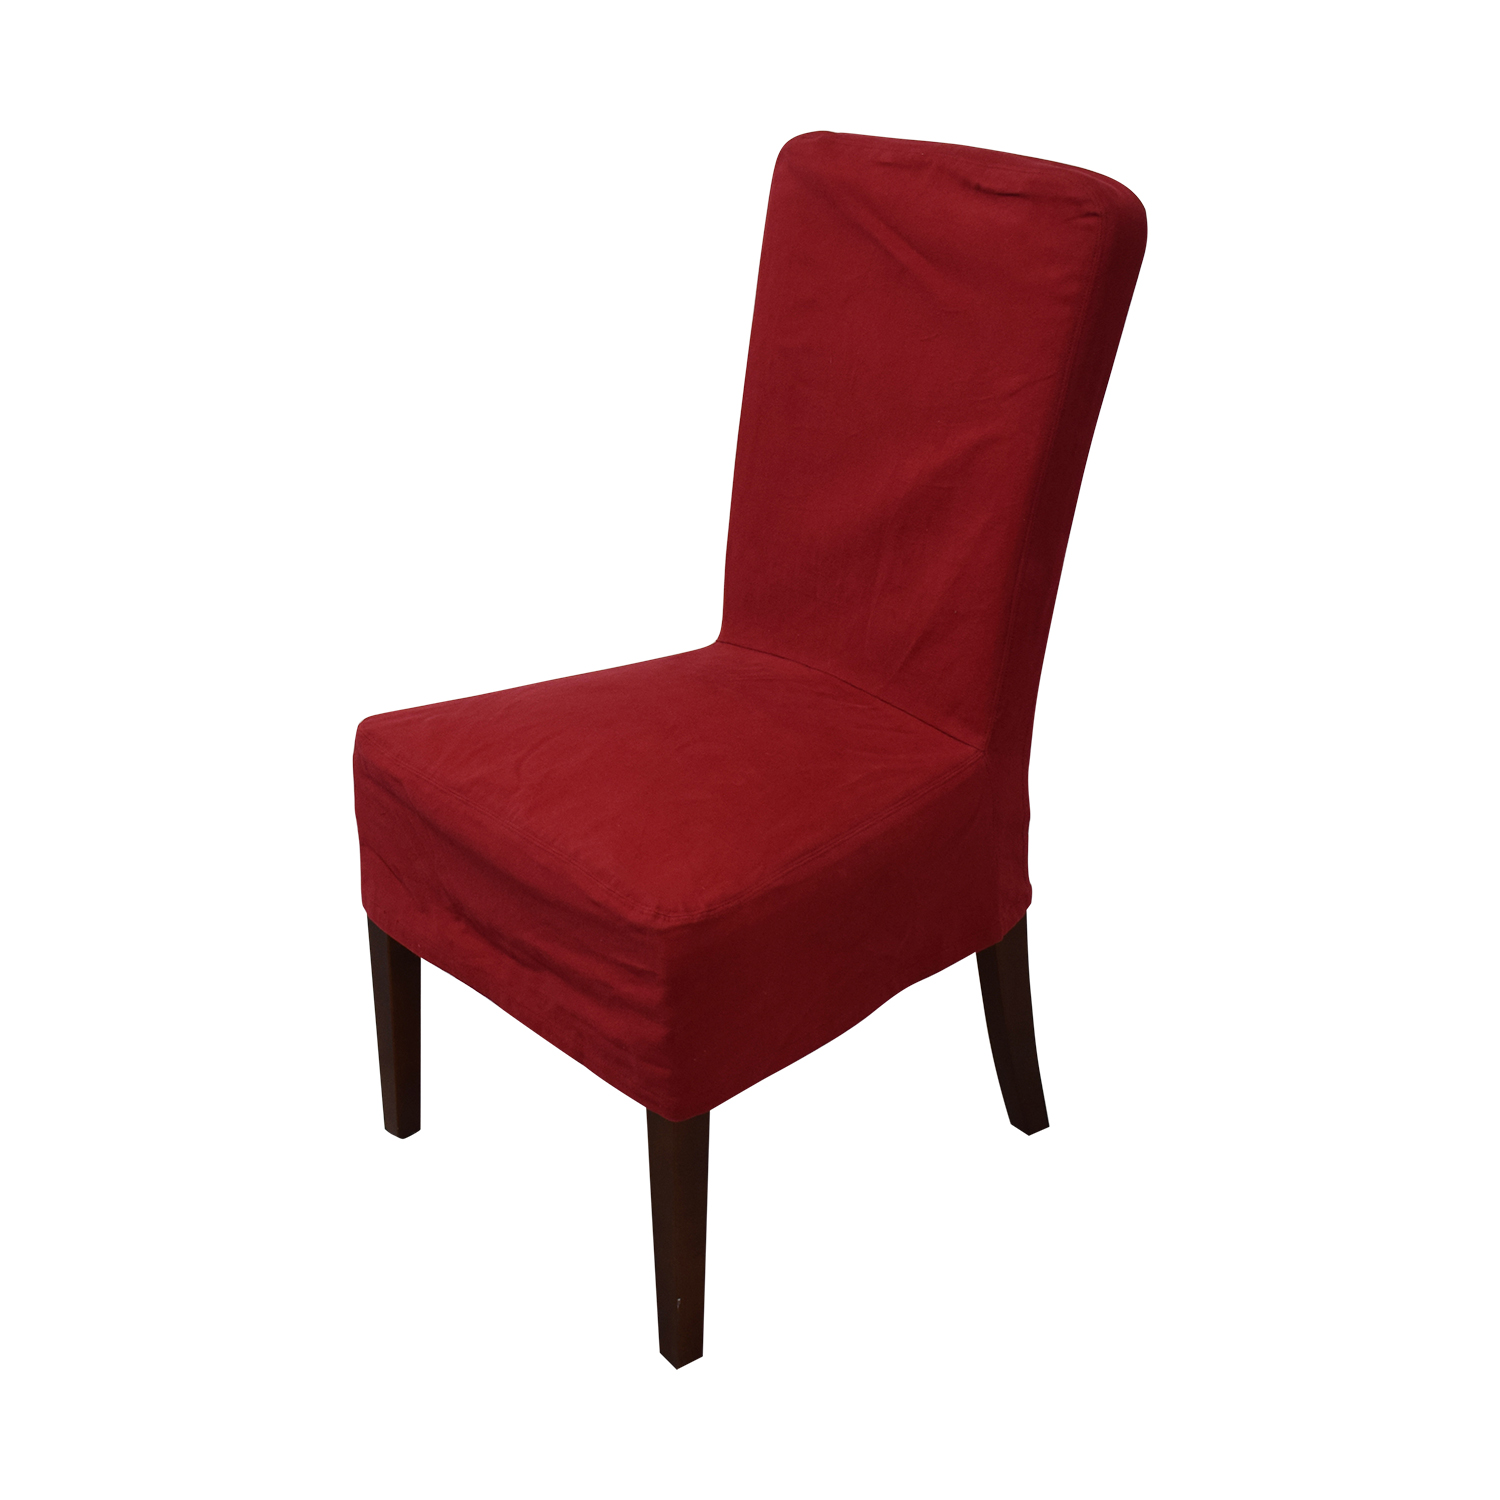 shop Pottery Barn Pottery Barn Parsons Red Chairs online